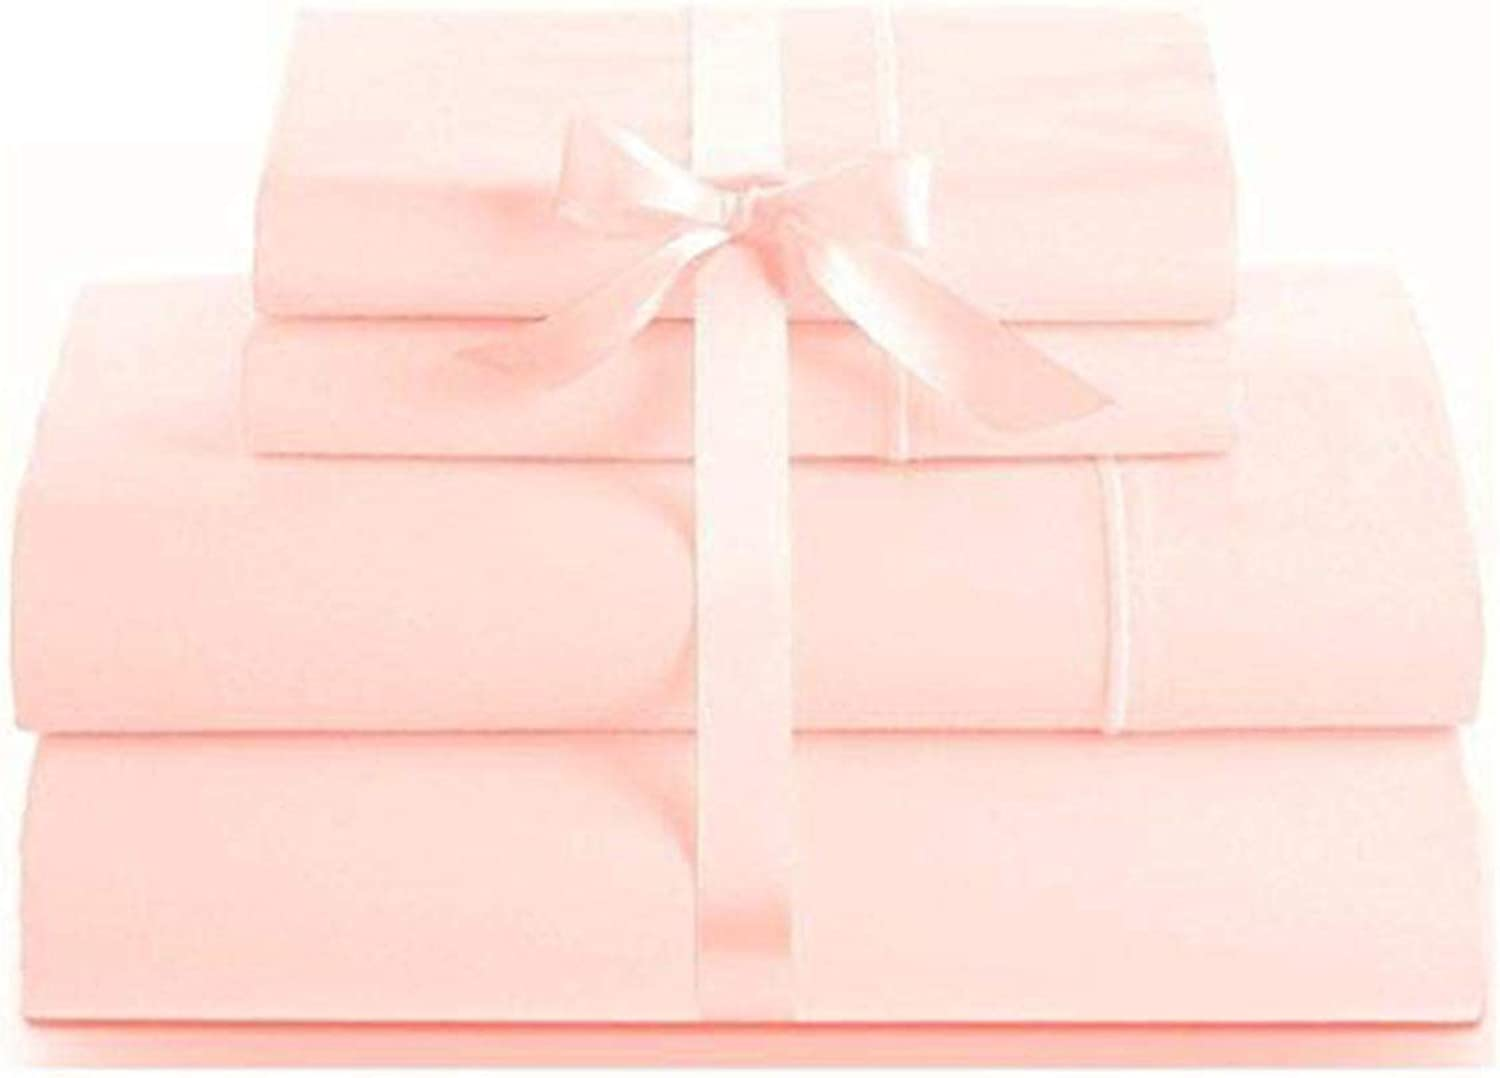 LINENWALAS 100% Cotton Natural Bed Sheets – 1000 Thread Count Deep Pocket   Silk Like Soft, Hypoallergenic, Breathable & Cool Bed Sheet Set 4 Piece   Hotel Sheets Todays Deal (King, Baby Pink)